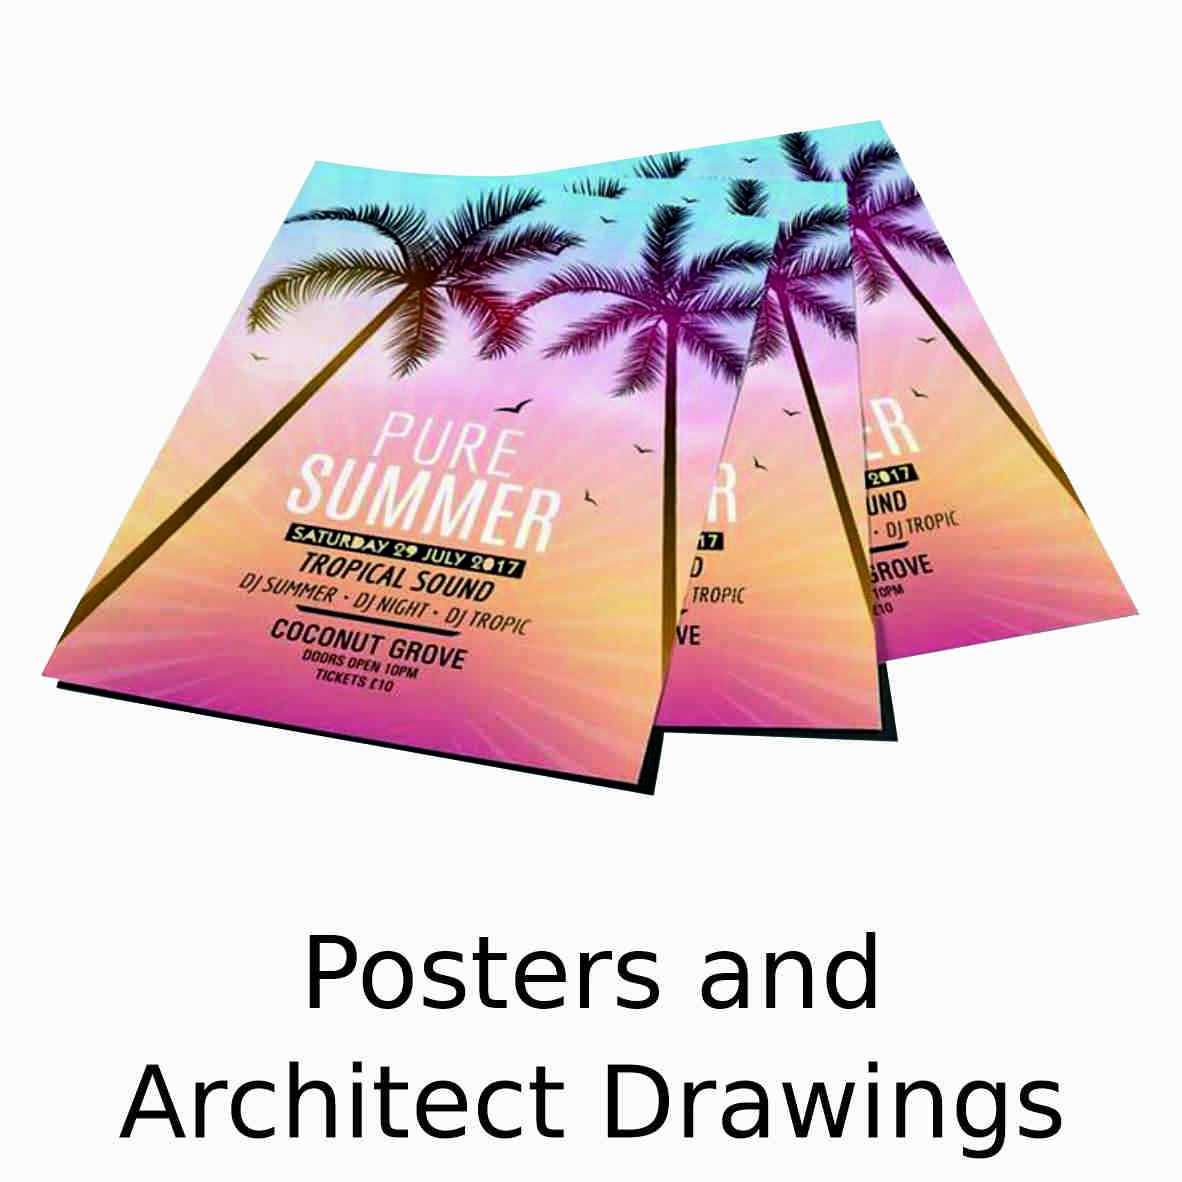 Posters and Architect Drawings